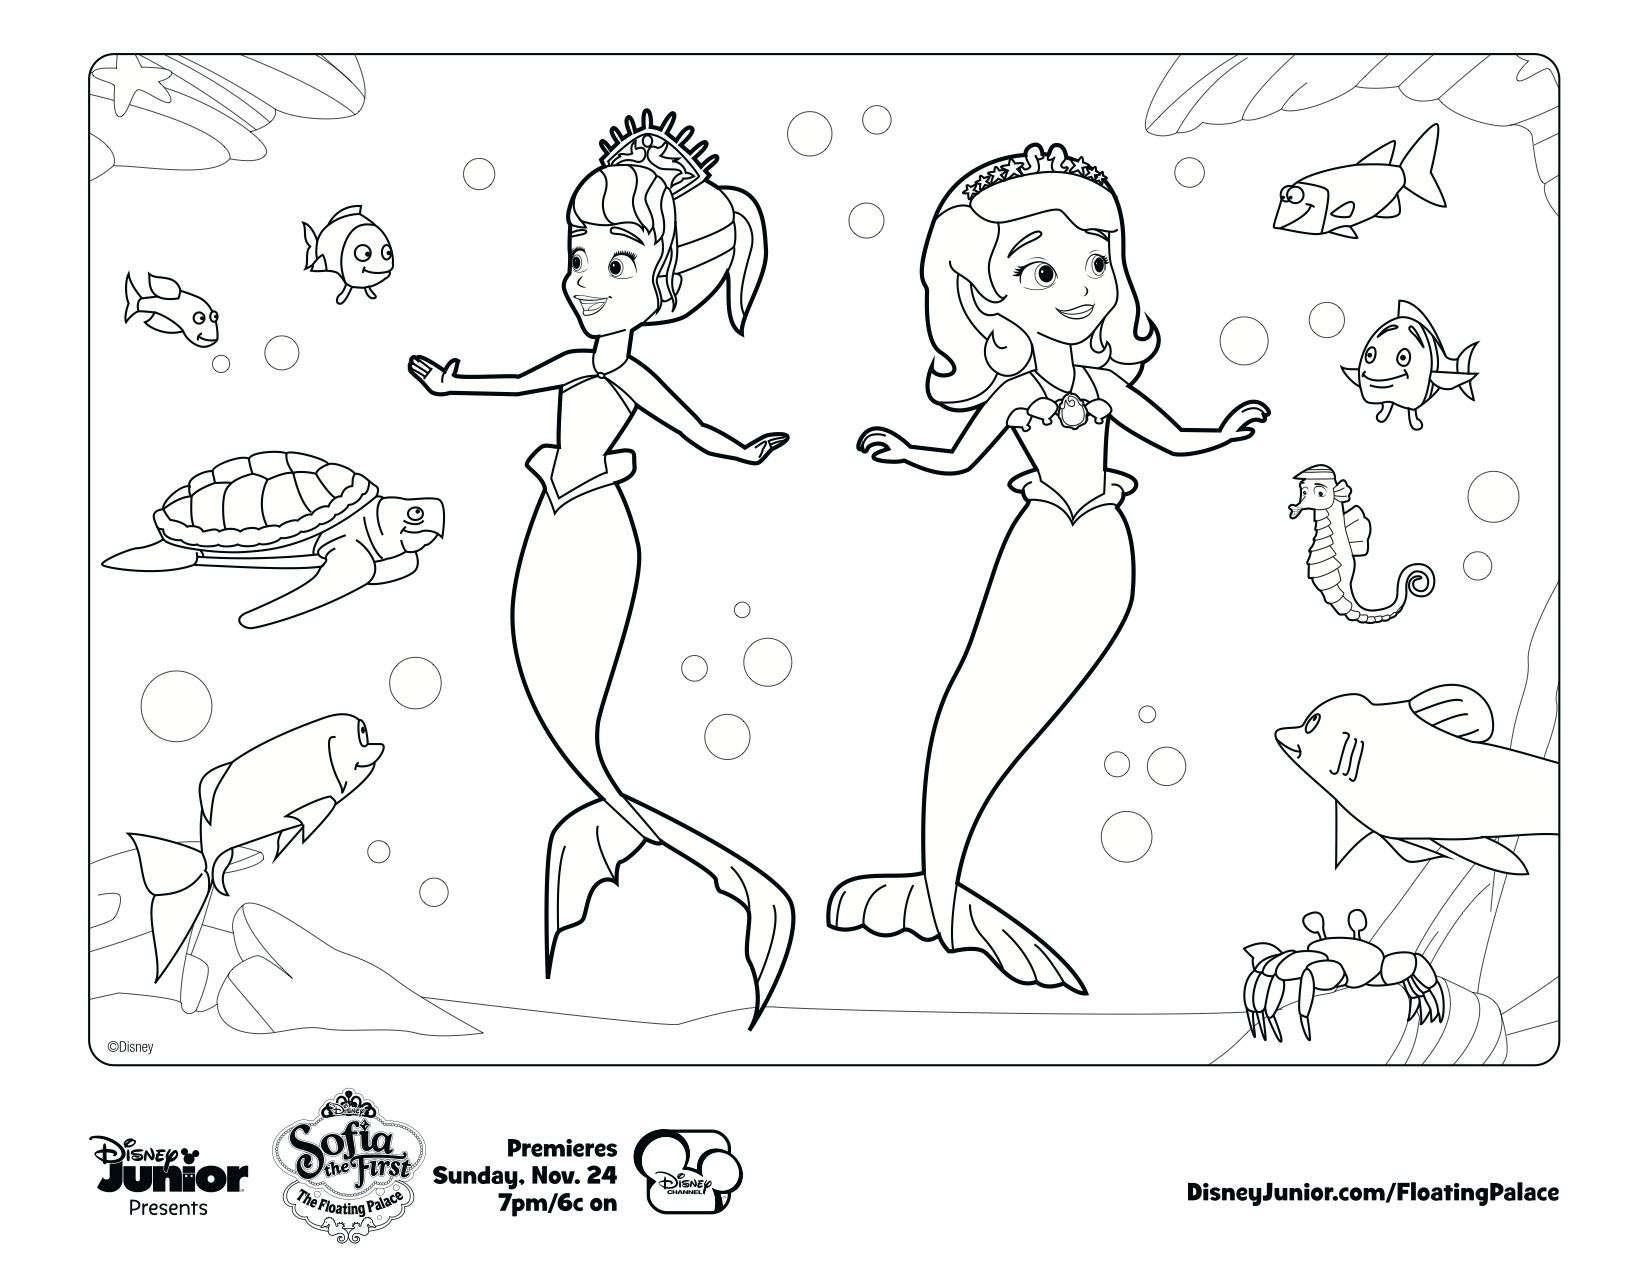 ok cccccccccccccc ssssssssss ok ok ok sofia coloring pages - Princess Tea Party Coloring Pages